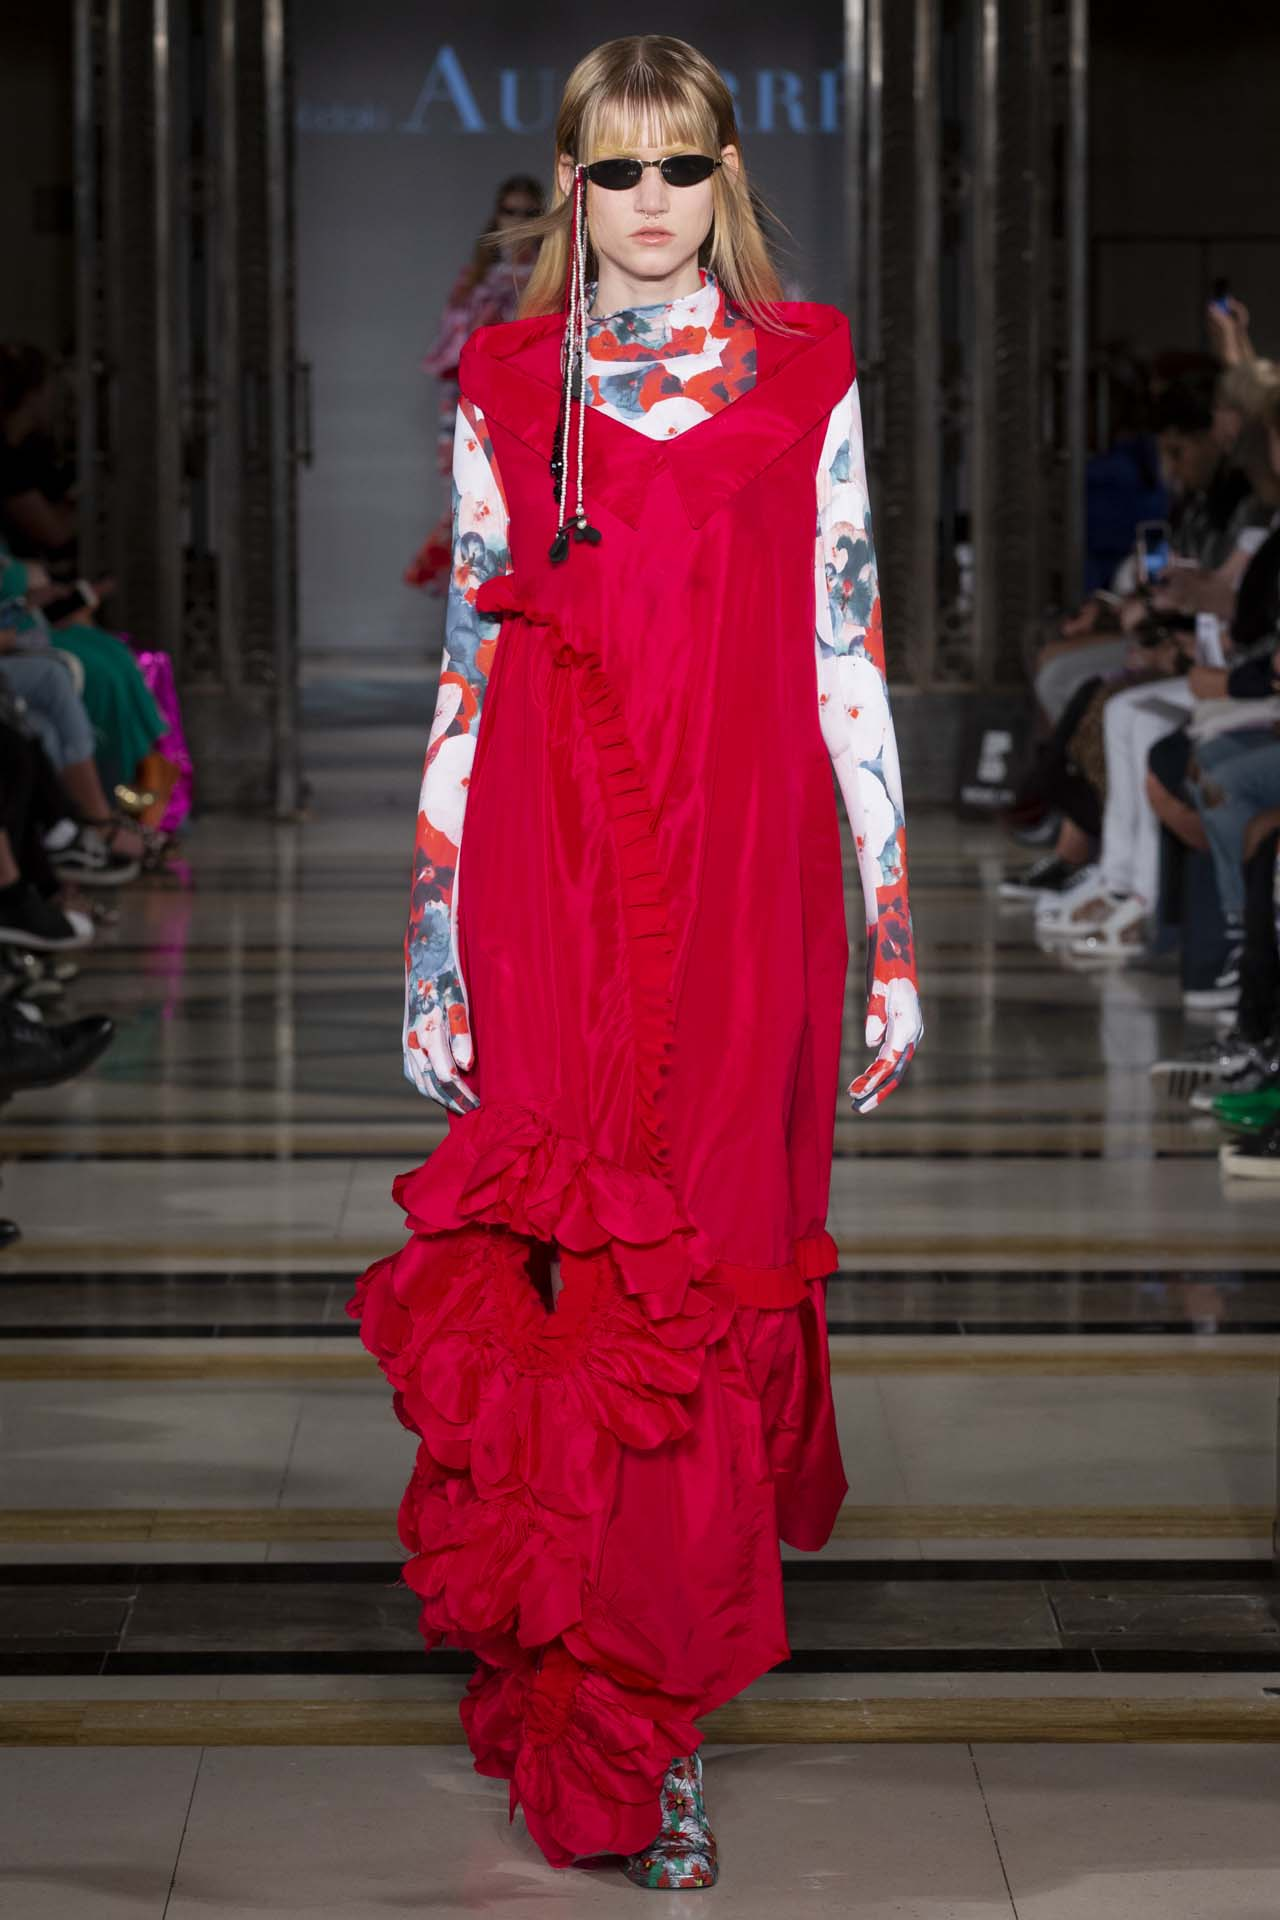 Fashion scout ss19 ones to watch aucarre (8)